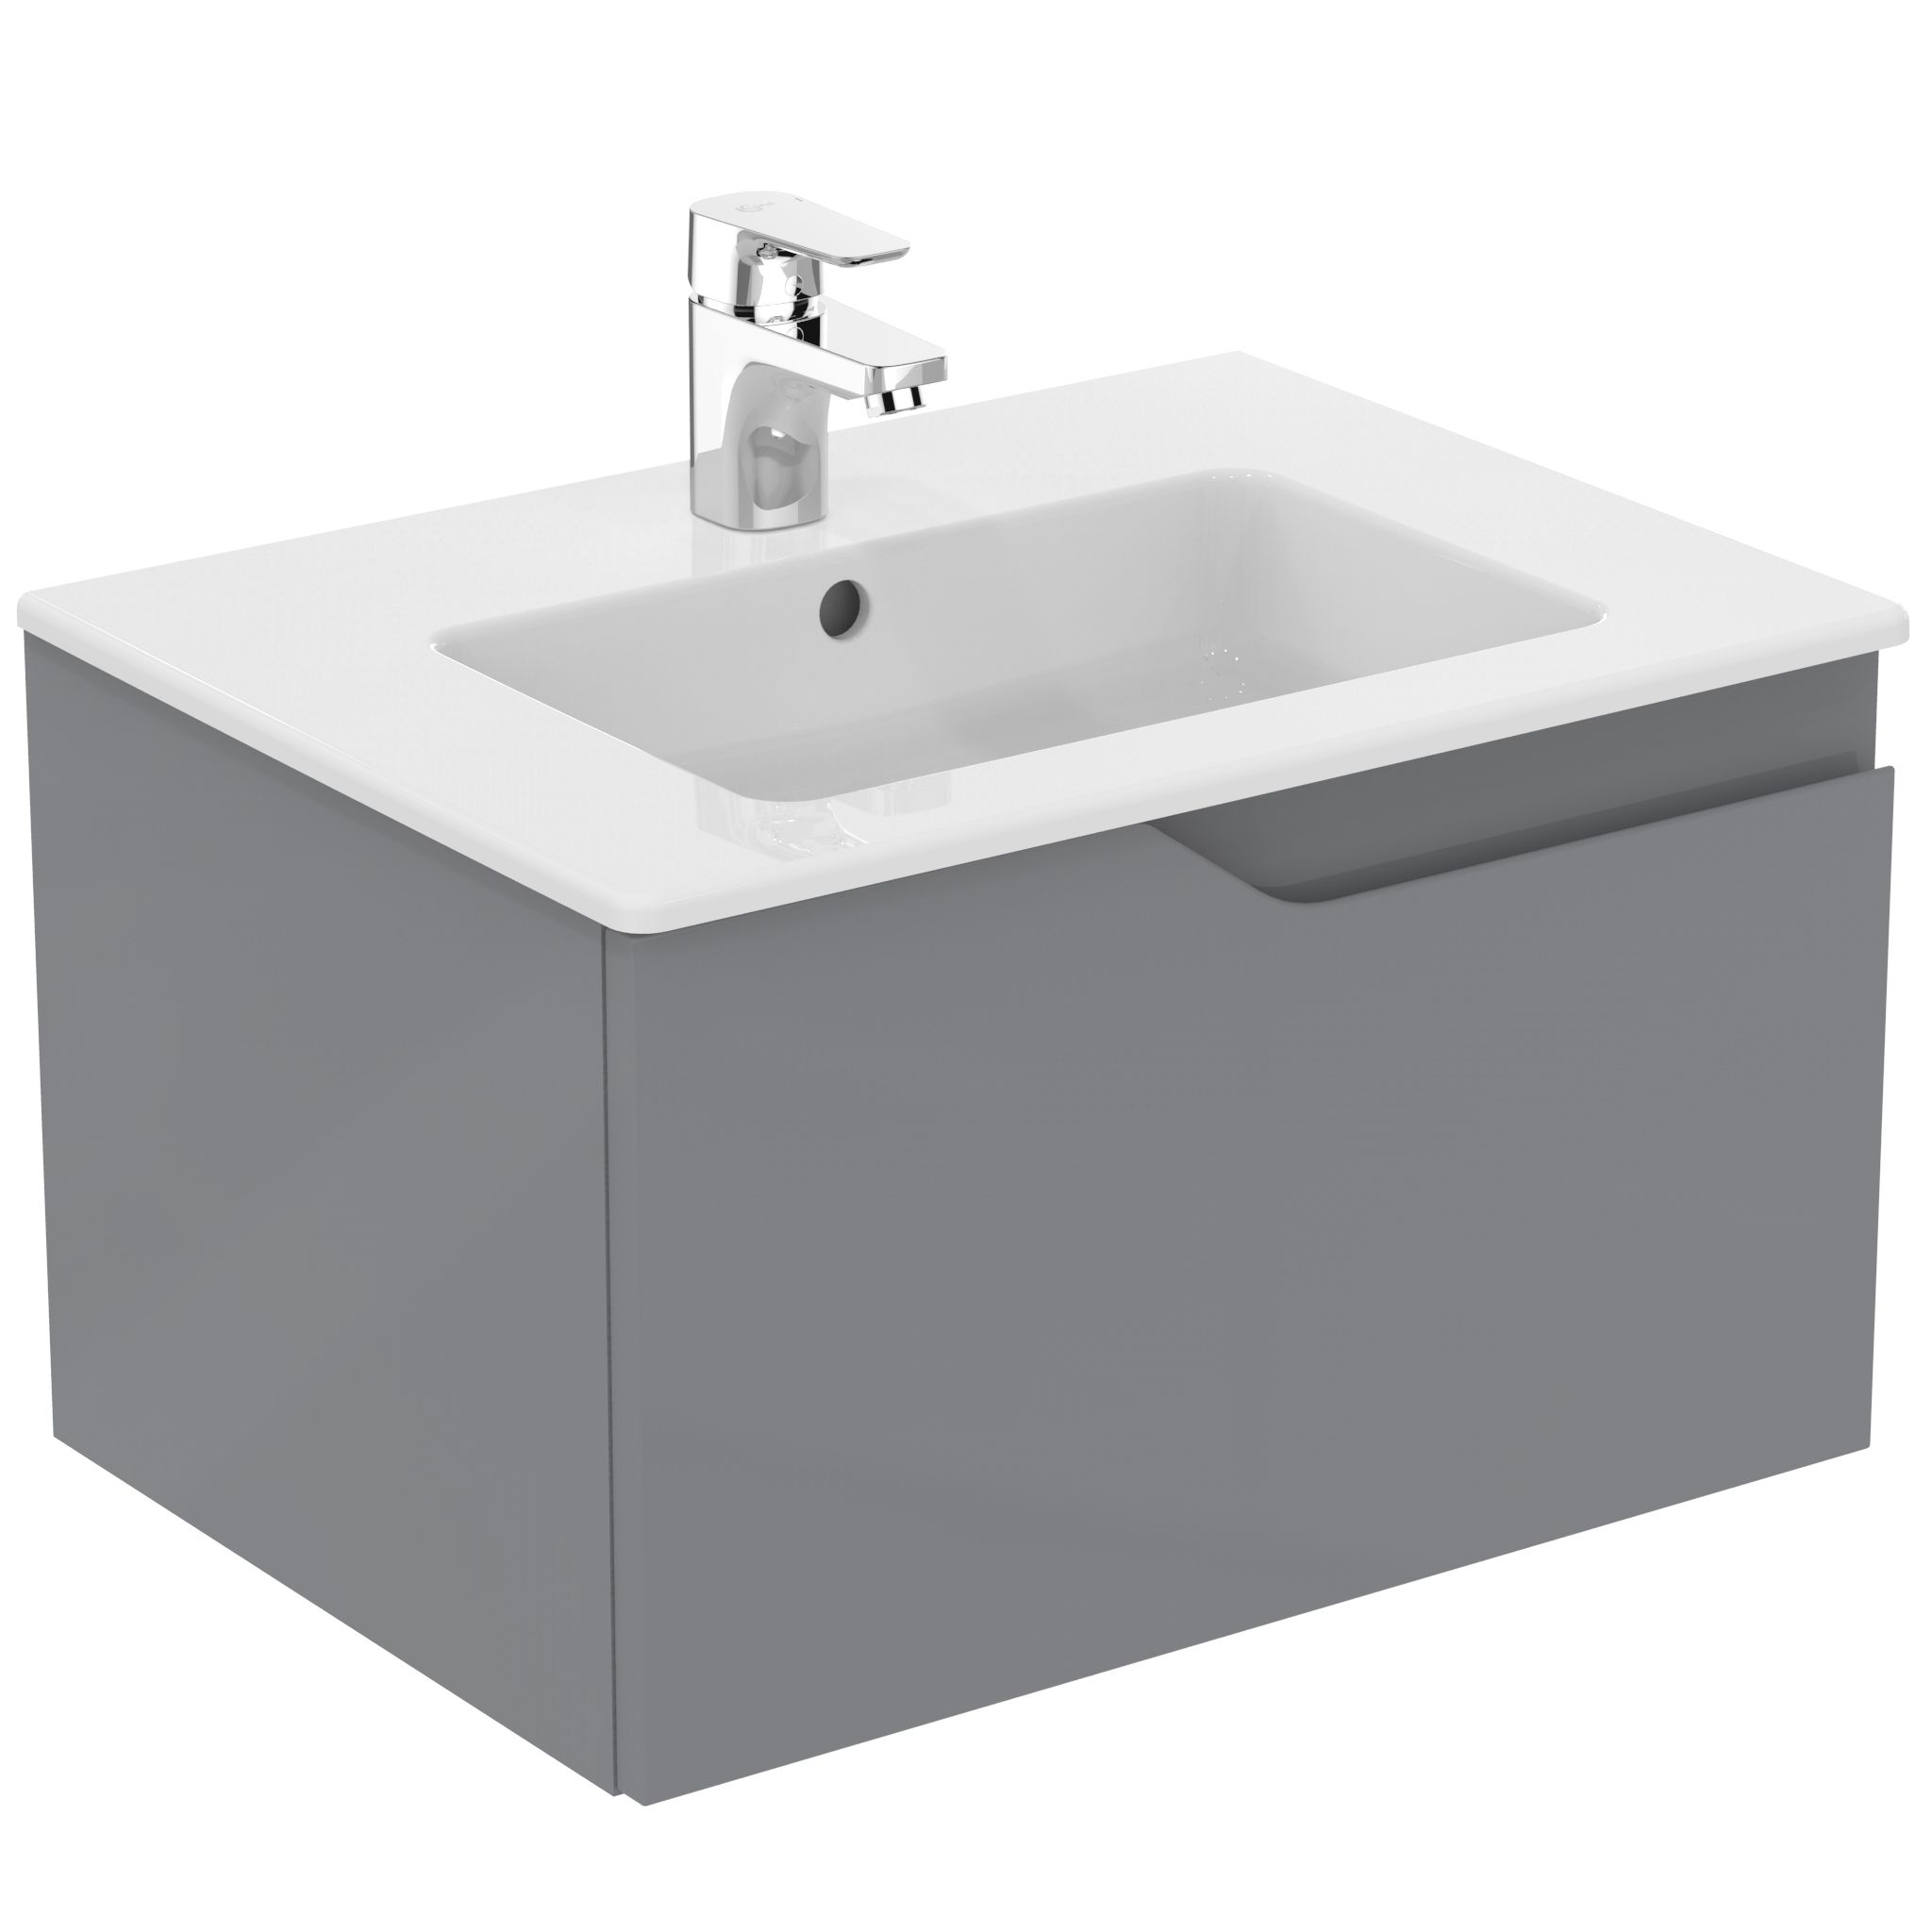 gloss gloss modular bathroom furniture collection vanity. Ideal Standard Imagine Gloss Grey Vanity Unit, Basin \u0026 Mixer Pack | Departments DIY At B\u0026Q Modular Bathroom Furniture Collection Y